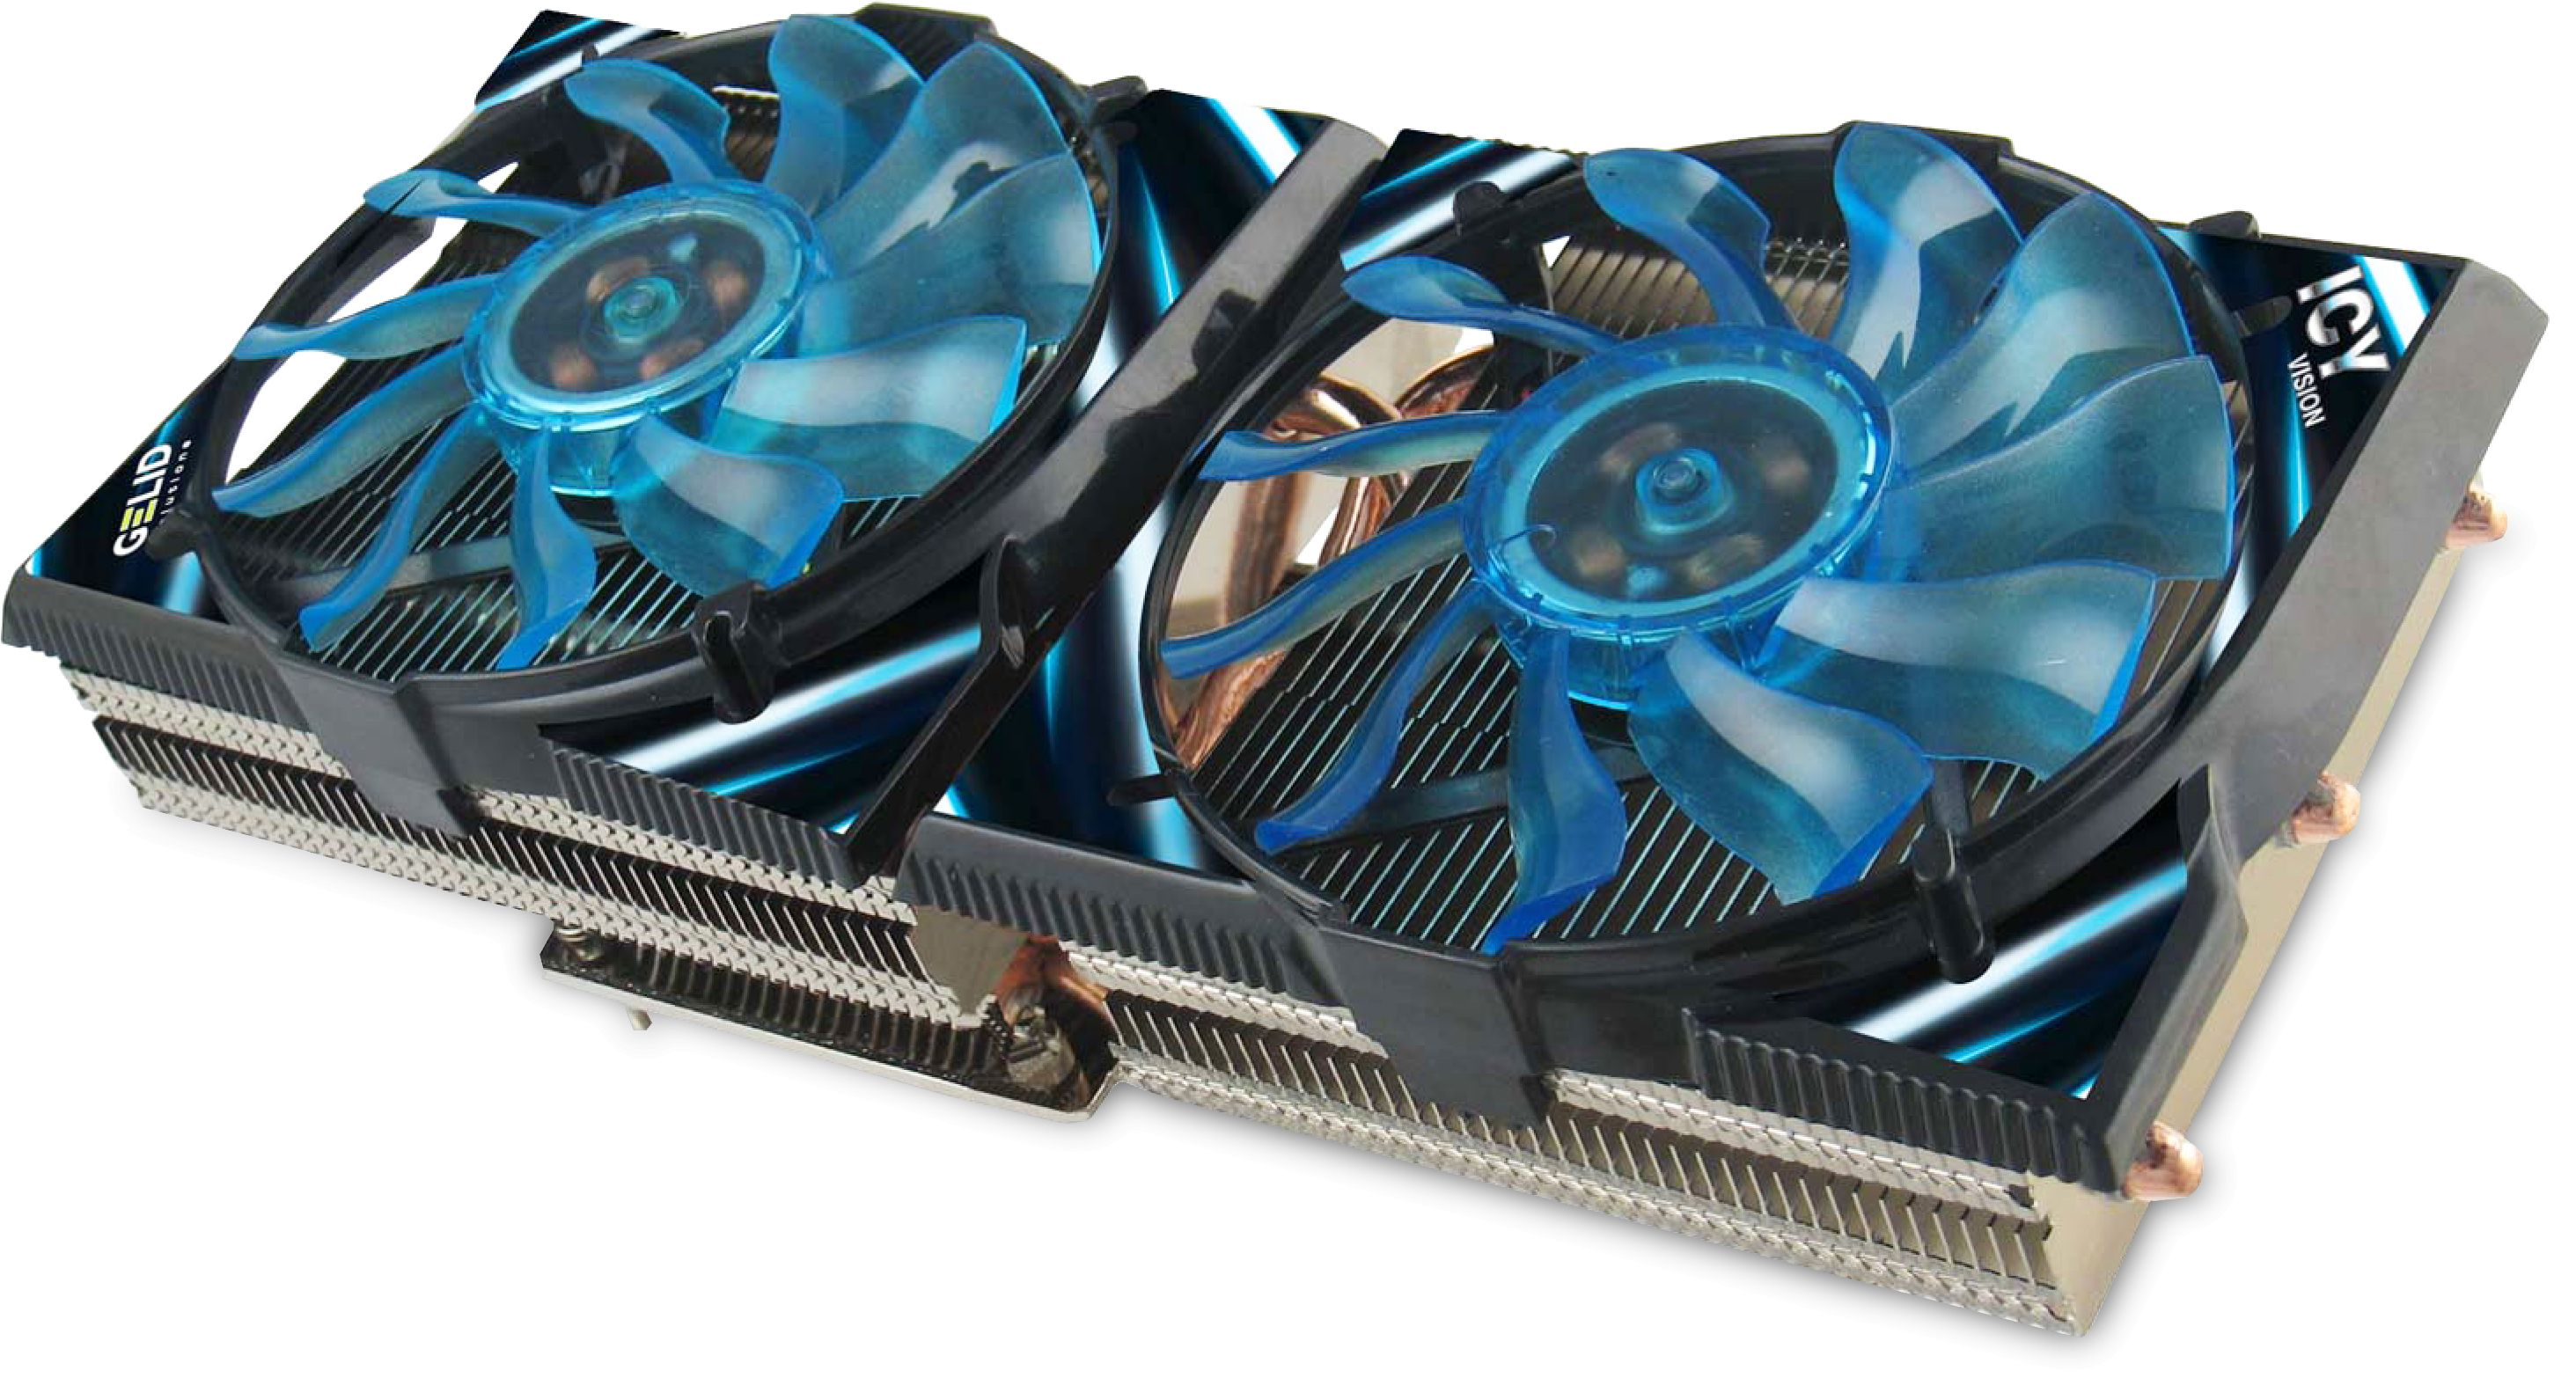 Icy Vision Rev.2 VGA Cooler for High-end AMD and Nvidia